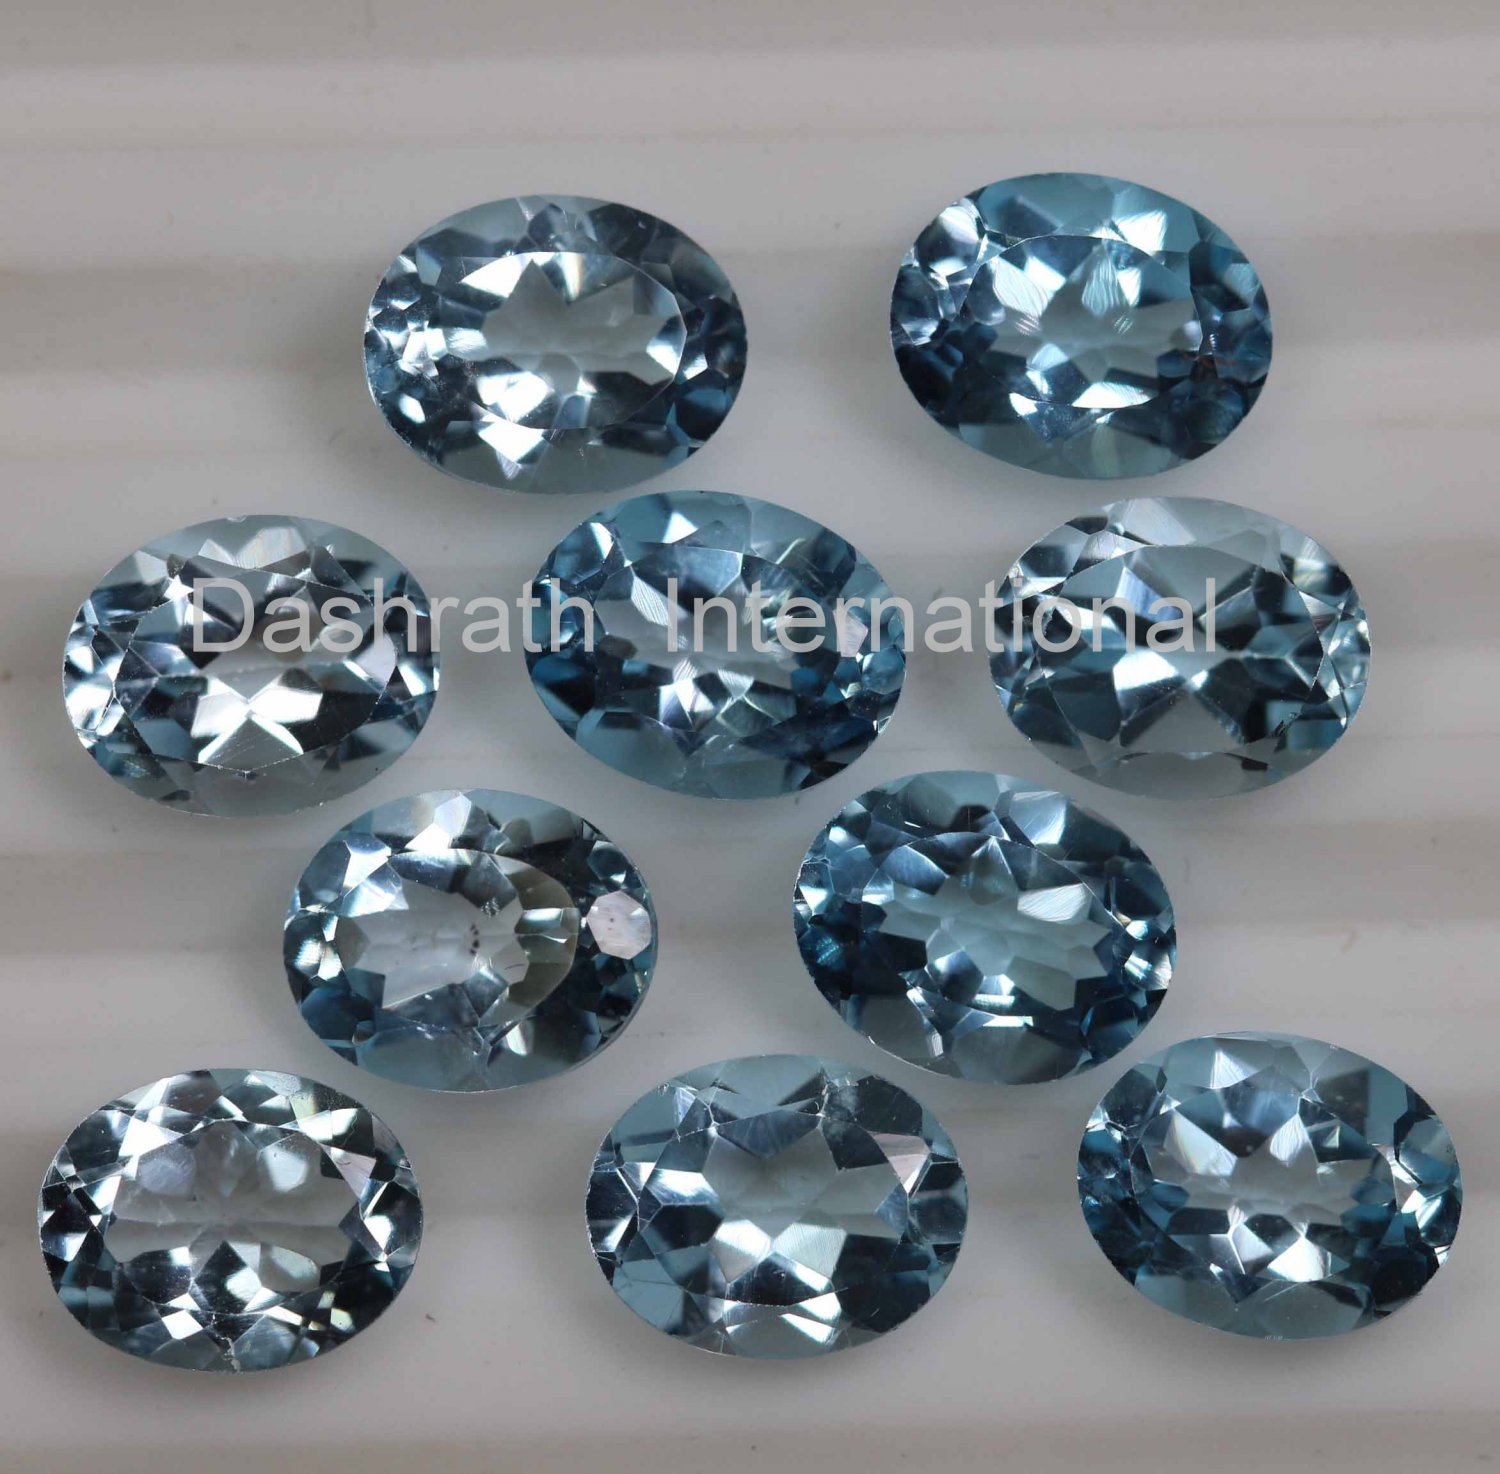 7x5mm Natural Sky Blue Topaz Faceted Cut Oval  10 Pieces Lot  Top Quality Loose Gemstone